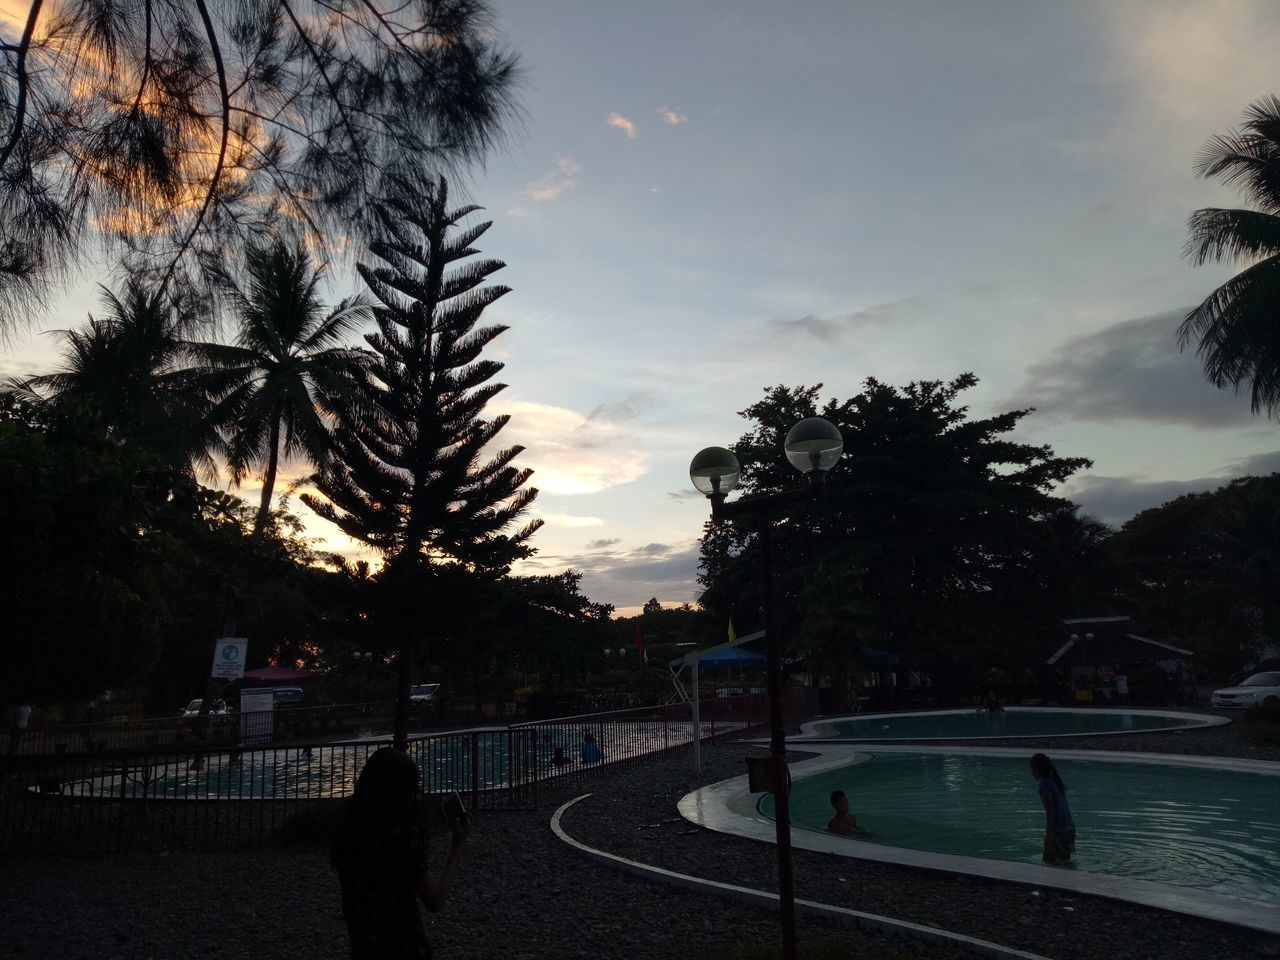 tree, real people, sky, palm tree, sunset, cloud - sky, silhouette, swimming pool, leisure activity, lifestyles, one person, sport, water, outdoors, men, skateboard park, nature, day, people